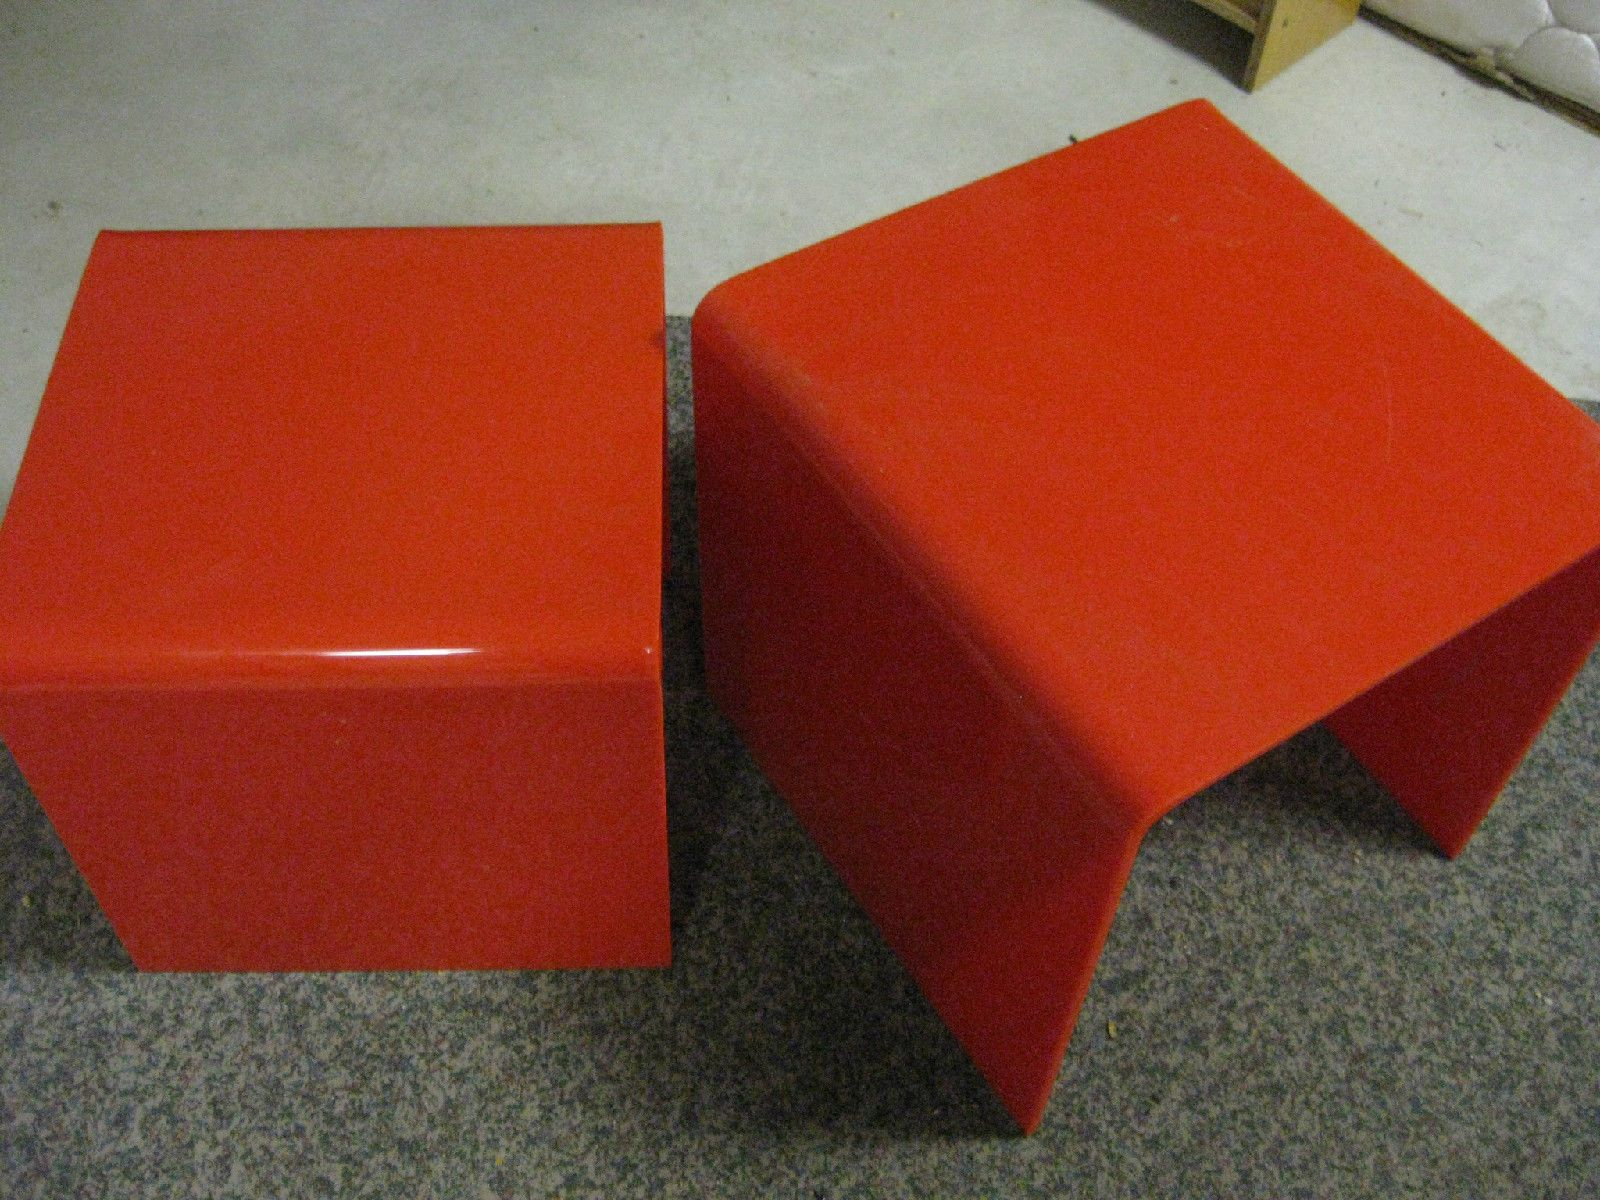 Retro Resin Perspex Side Tables Orange RED Colours Stunning Pieces in Carnegie, VIC | eBay